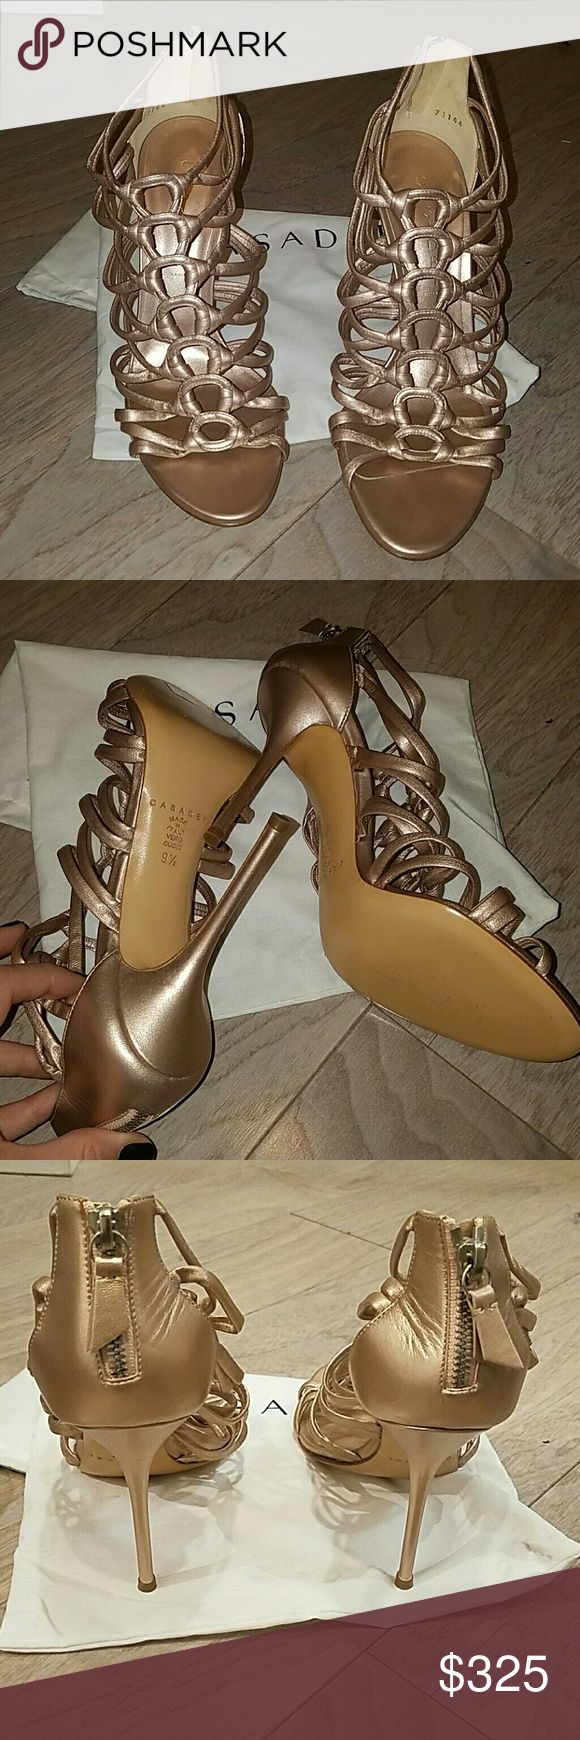 Casadei rose gold high heel sandal Rose gold strappy high heel sandal. Never been worn. Includes dust bag. Casadei Shoes Heels